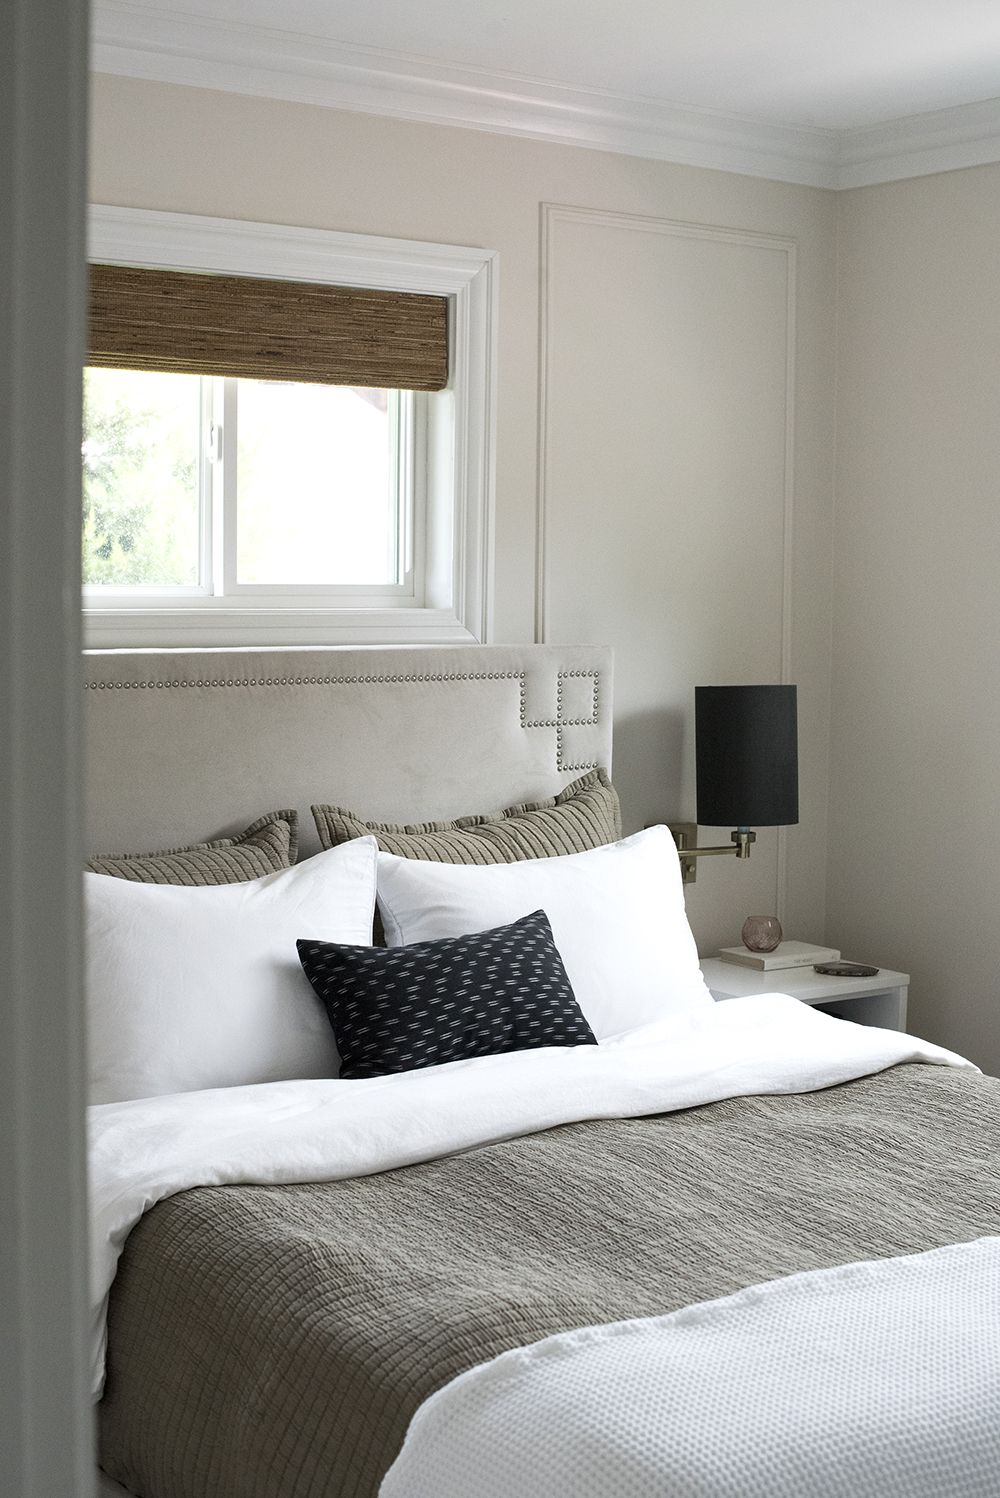 Our Guest Room + How to Layer Bedding Room for Tuesday